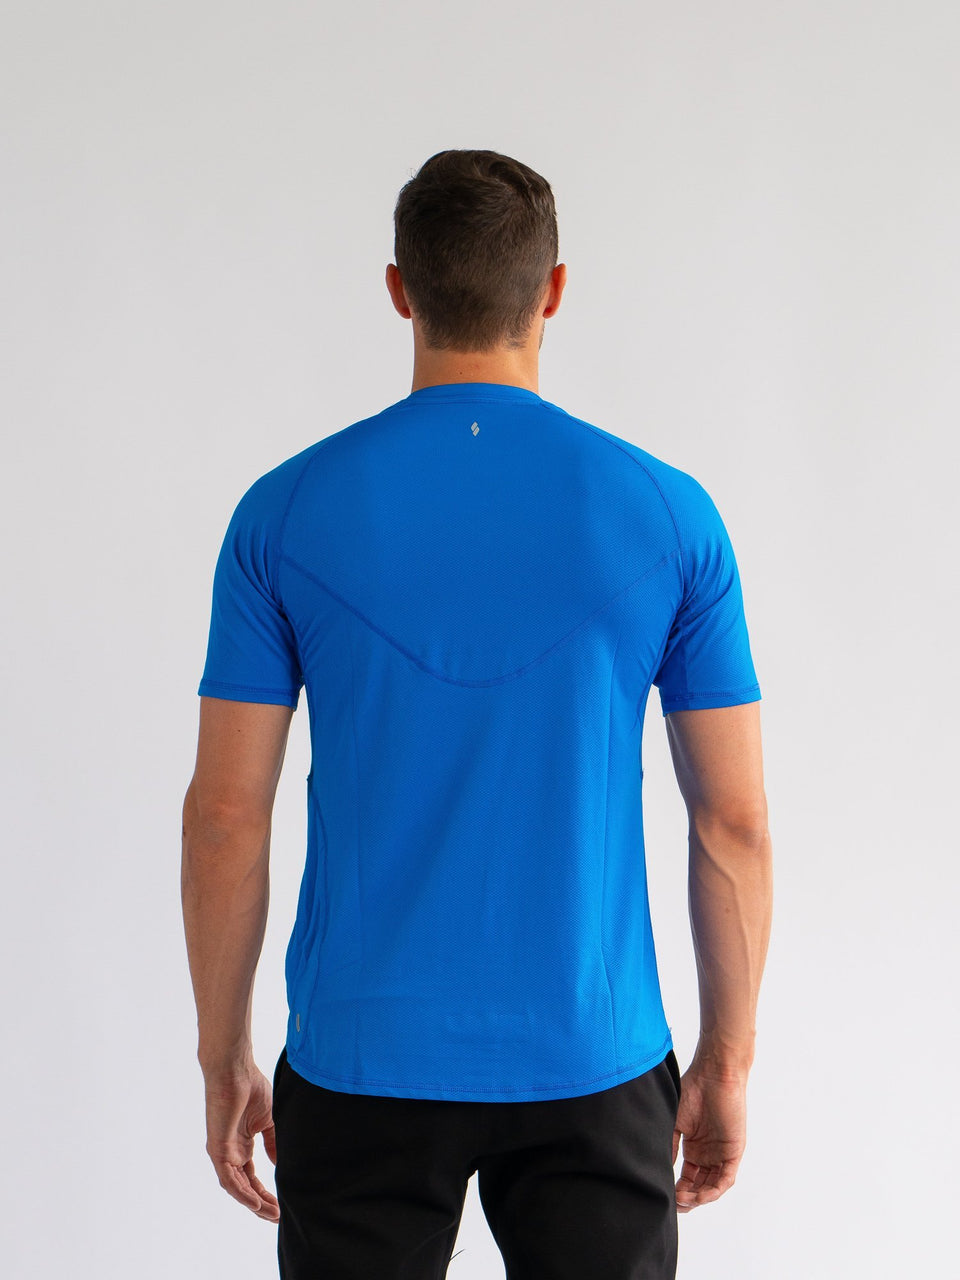 C3 WORKOUT SHIRT - SODO Apparel - SHIRTS